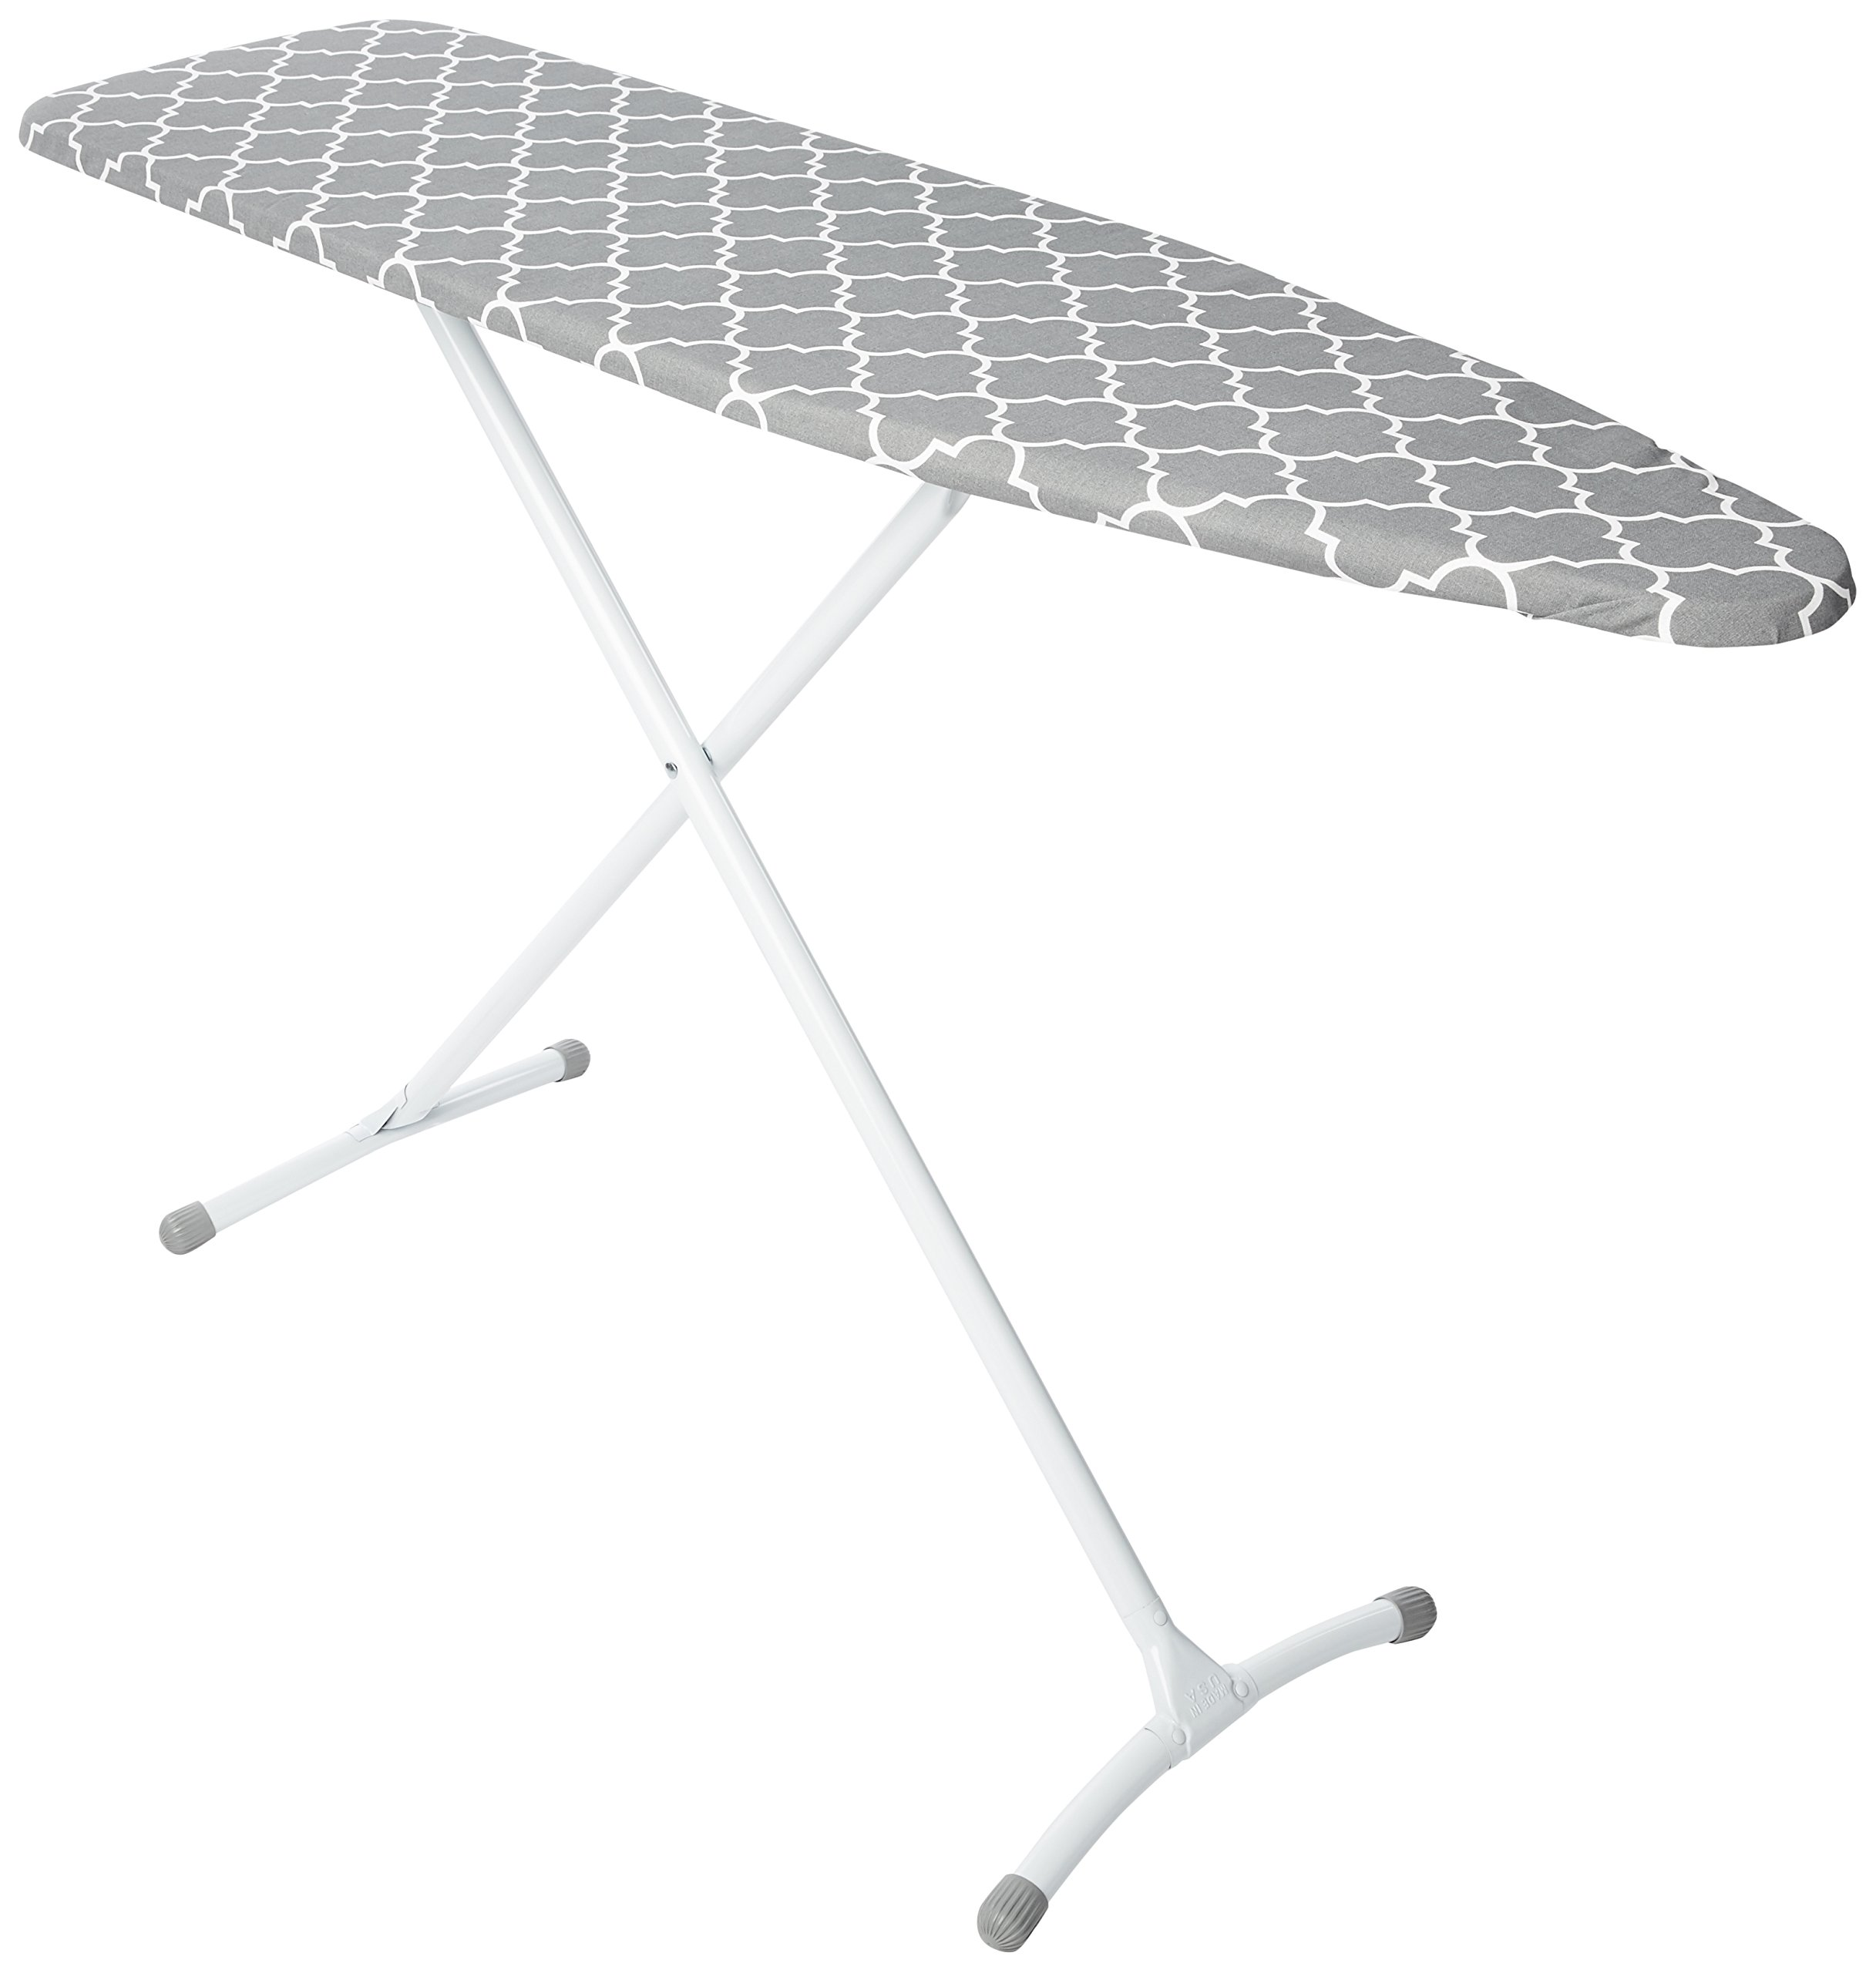 Homz Steel Ironing Board Contour Grey & White Lattice Cover, Grey and White Filigree by Homz